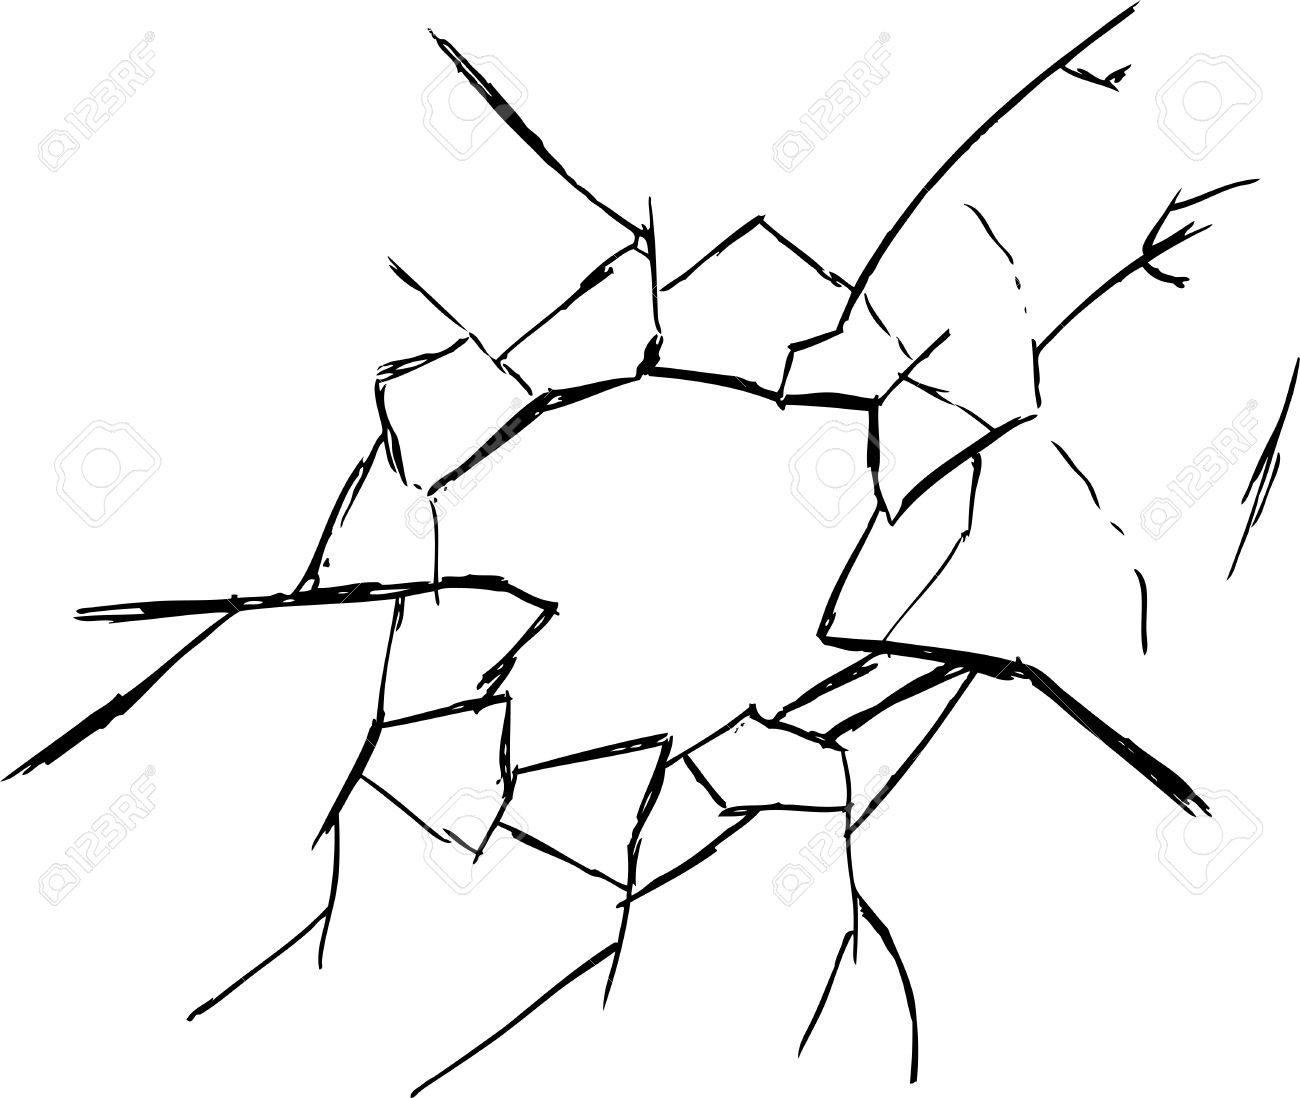 broken glass royalty free cliparts vectors and stock illustration rh 123rf com broken glass victorious guitar chords broken glass vector free